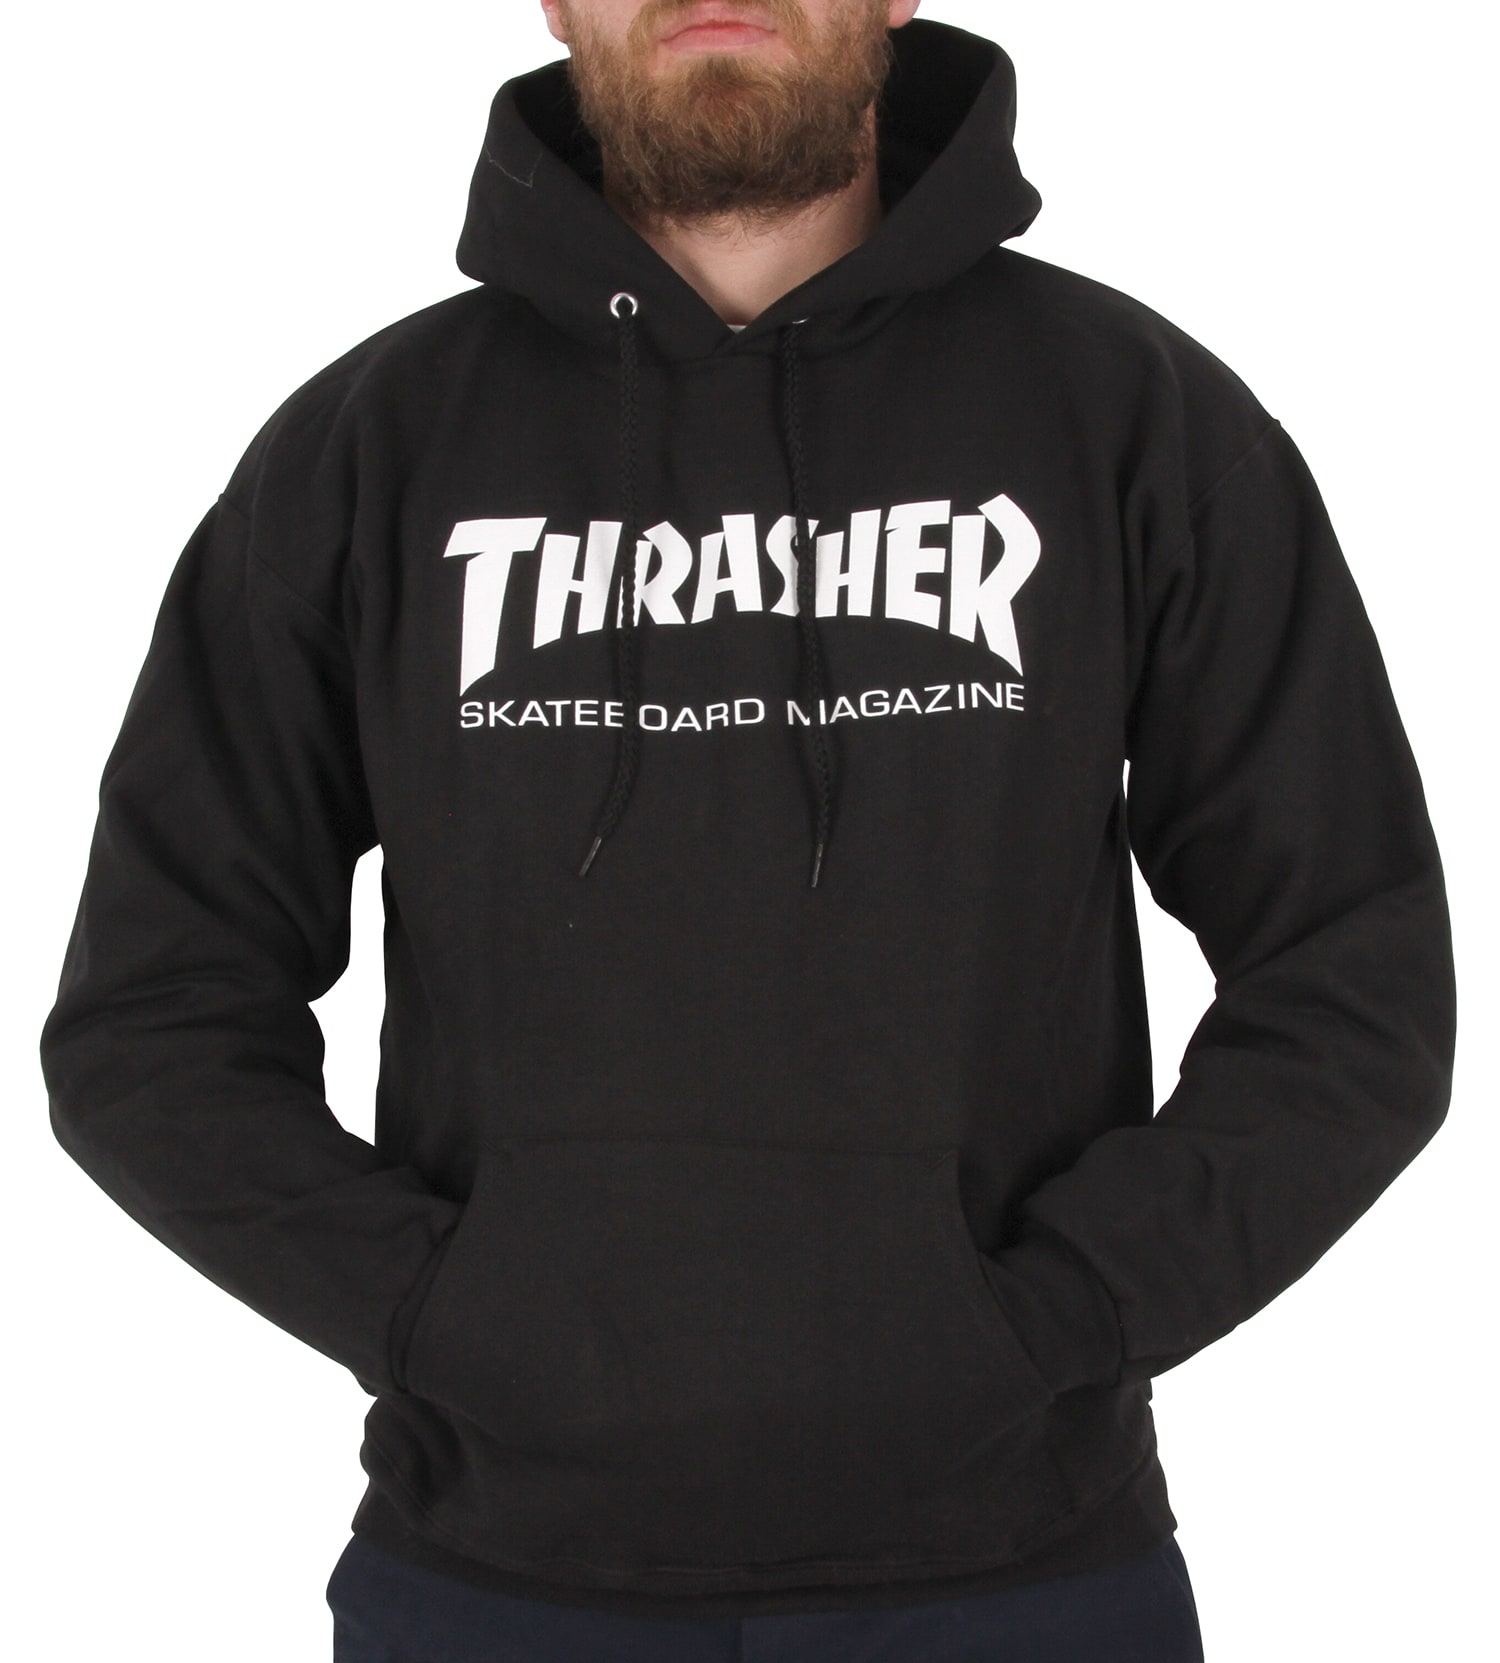 884d8877dcf Thrasher Skate Mag Logo Hoodie - Black   Thrasher Hoodie   Thrasher T Shirt    Thrasher UK   Thrasher Clothing   Caps   Skatehut